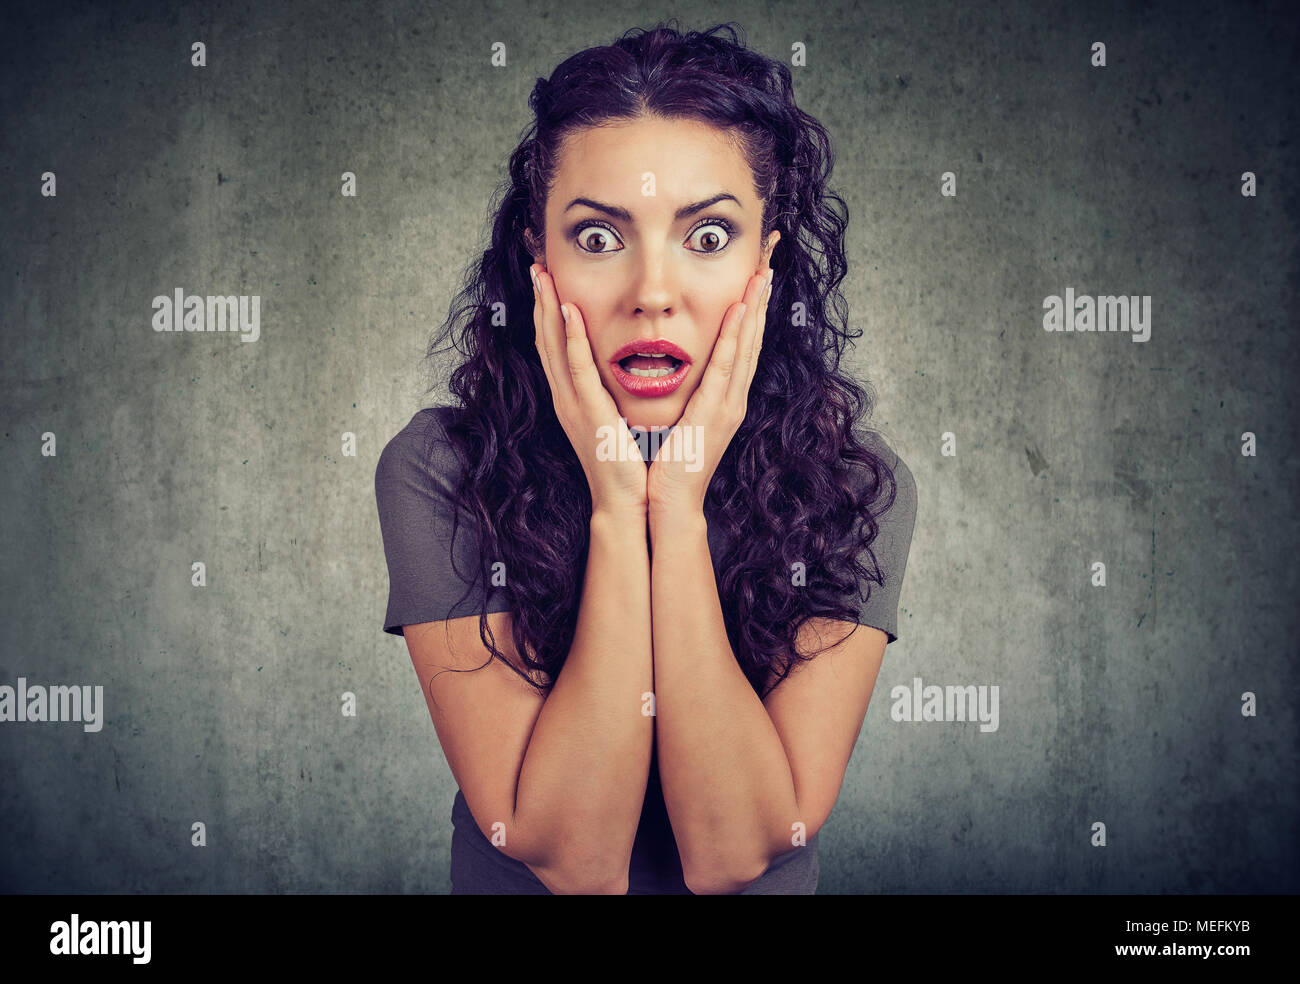 Amazed shocked woman looking at camera on gray wall background - Stock Image